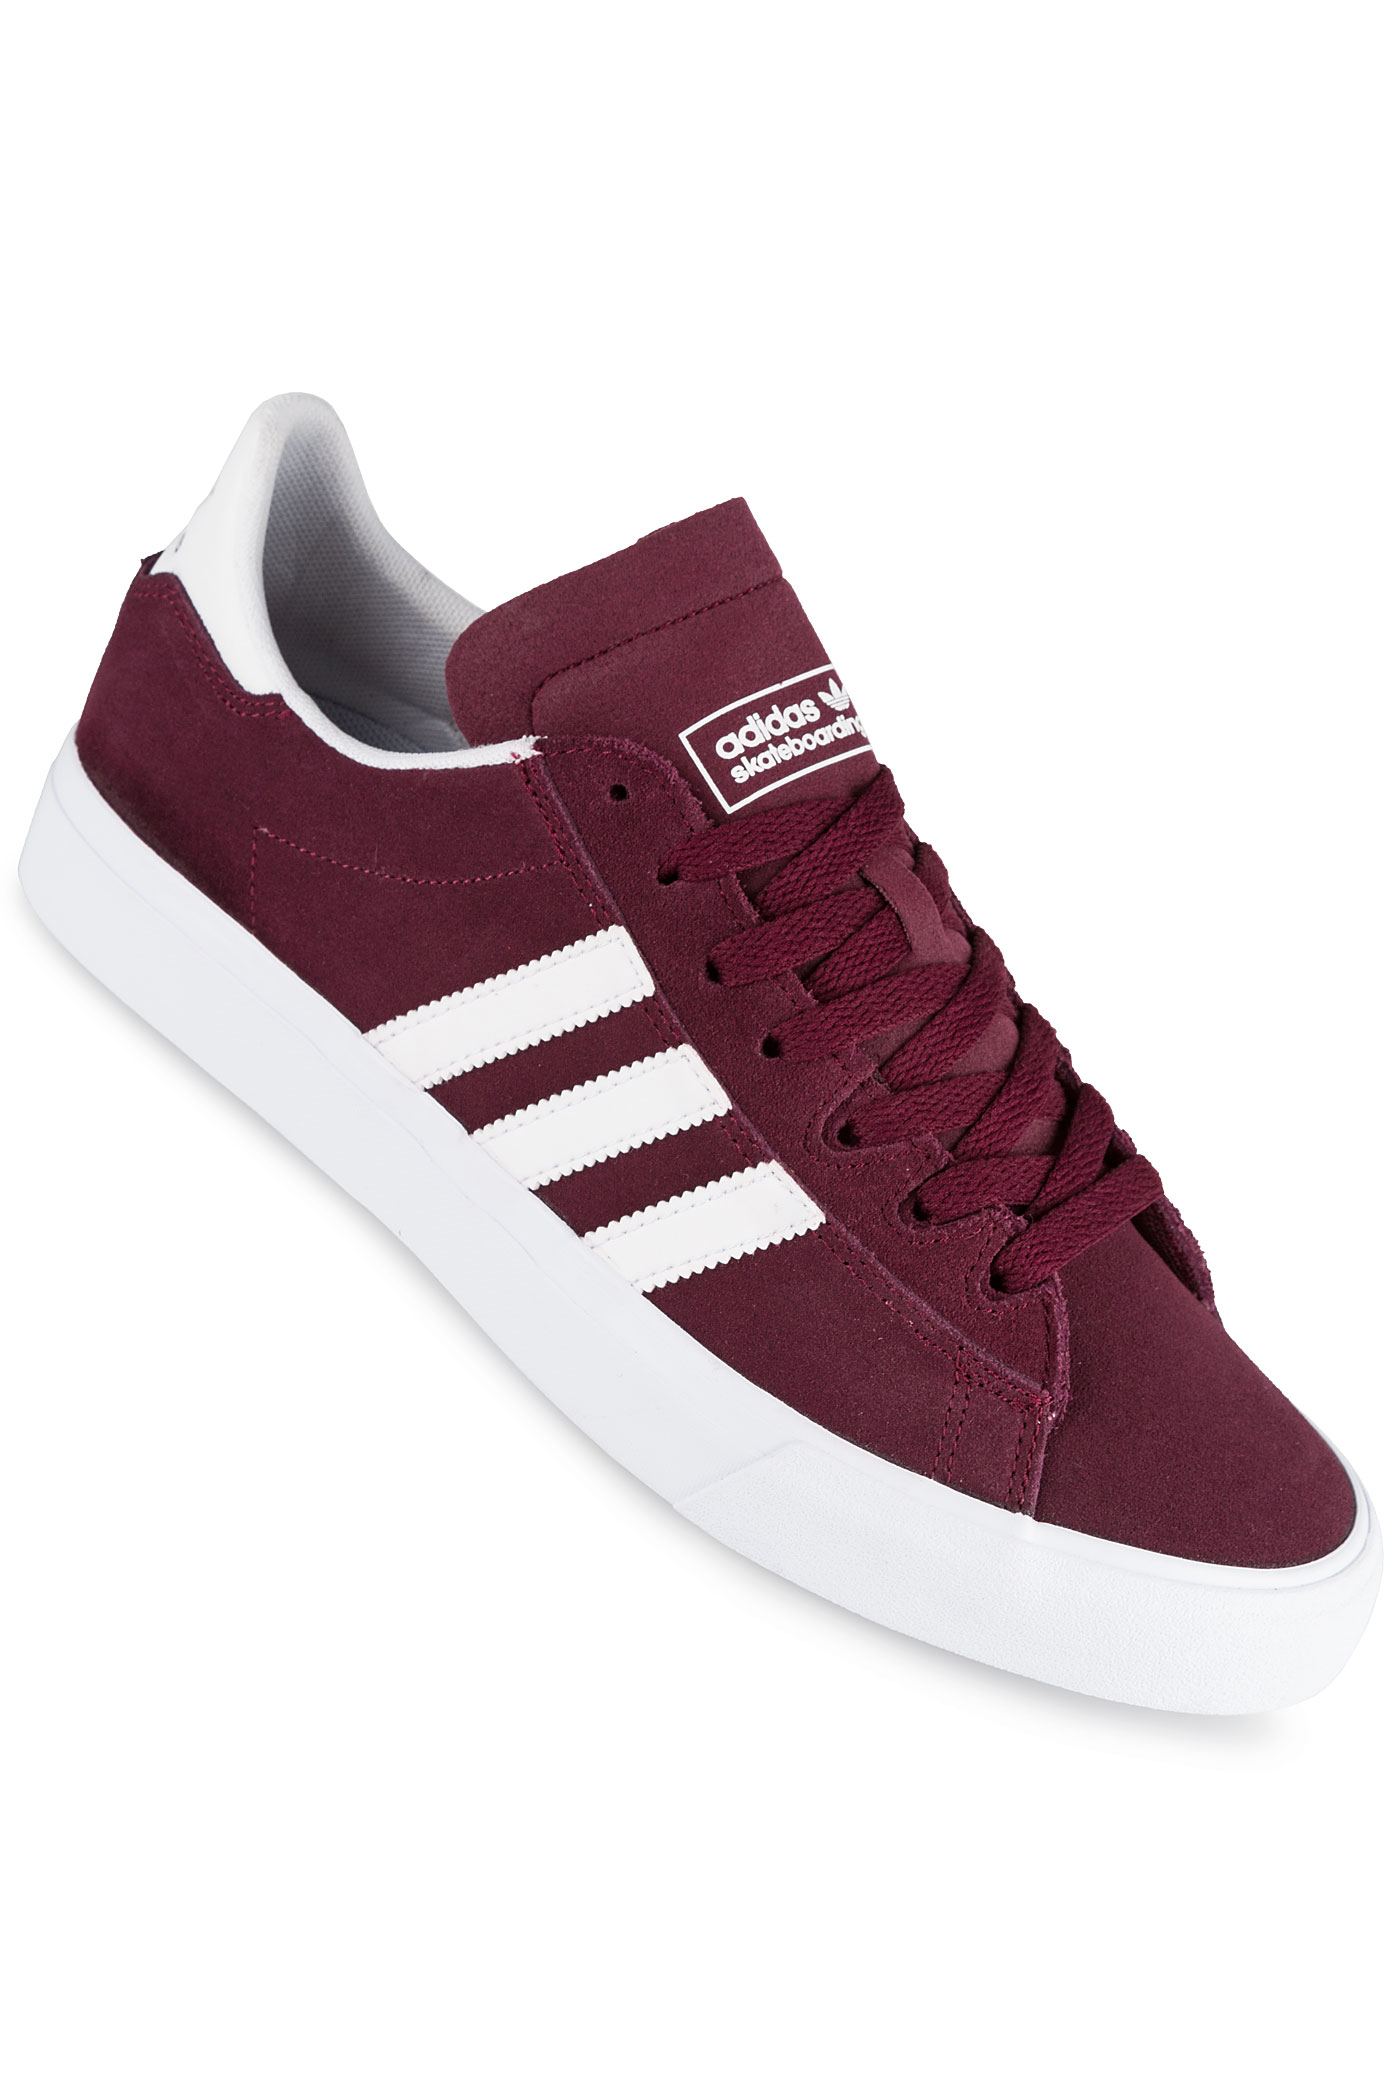 Adidas Japan Skate White Shoes